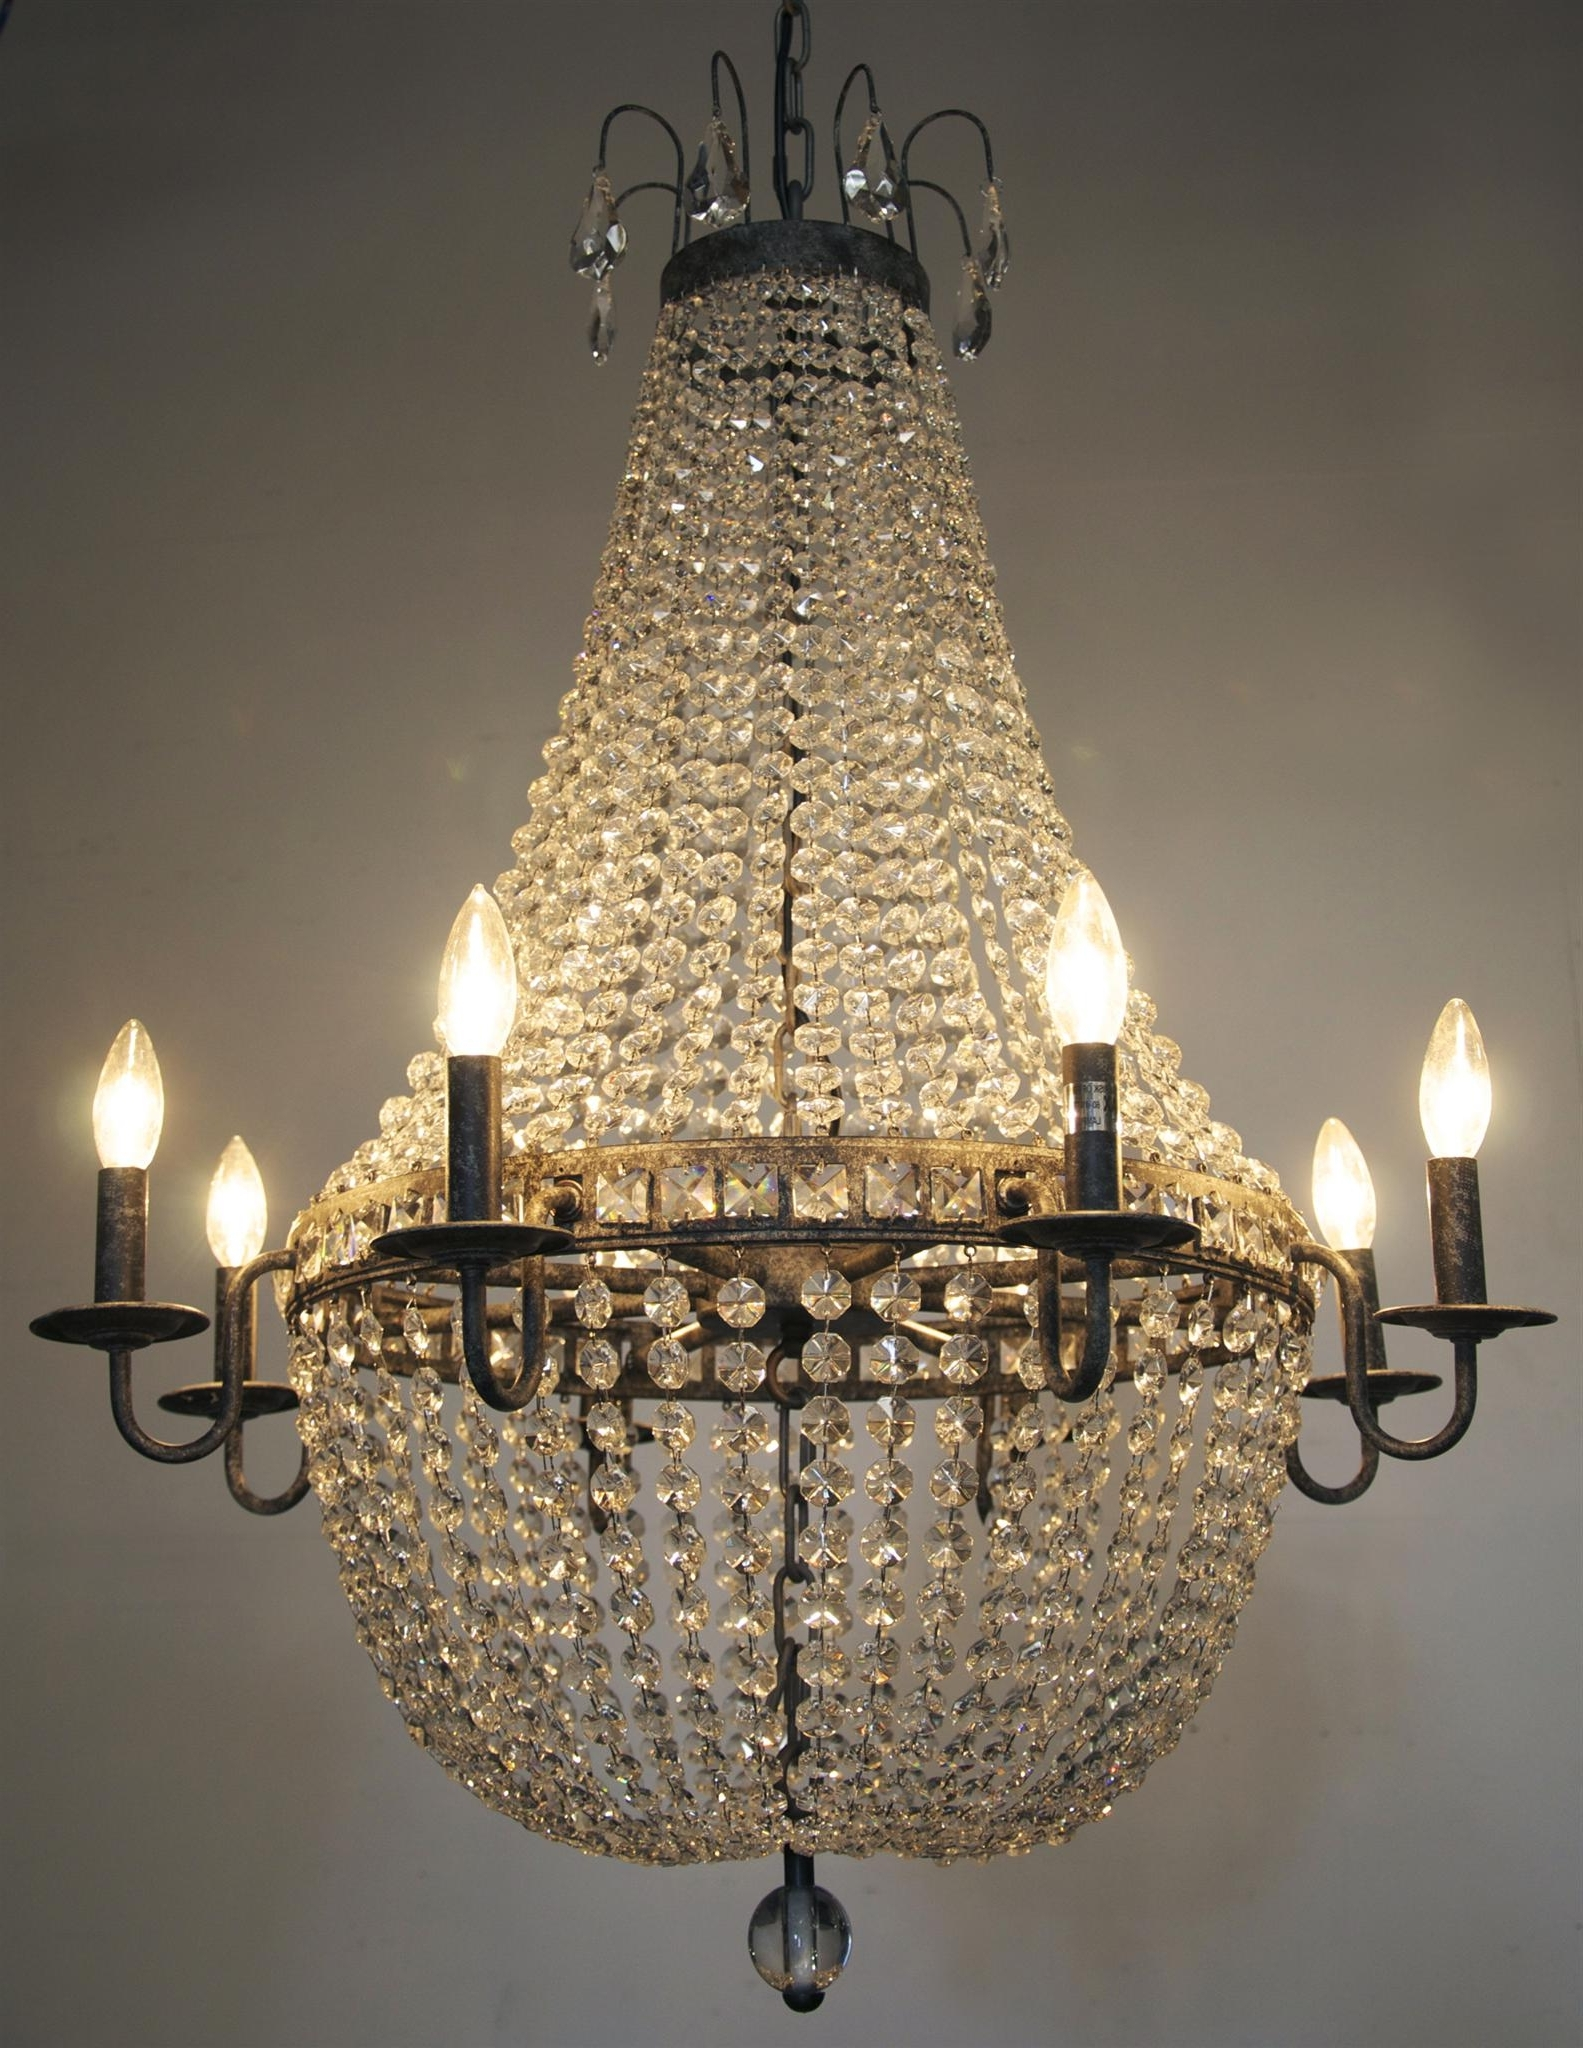 2017 Light : Stunning Antique Crystal Chandelier With Additional Of Intended For Antique Style Chandeliers (View 15 of 15)